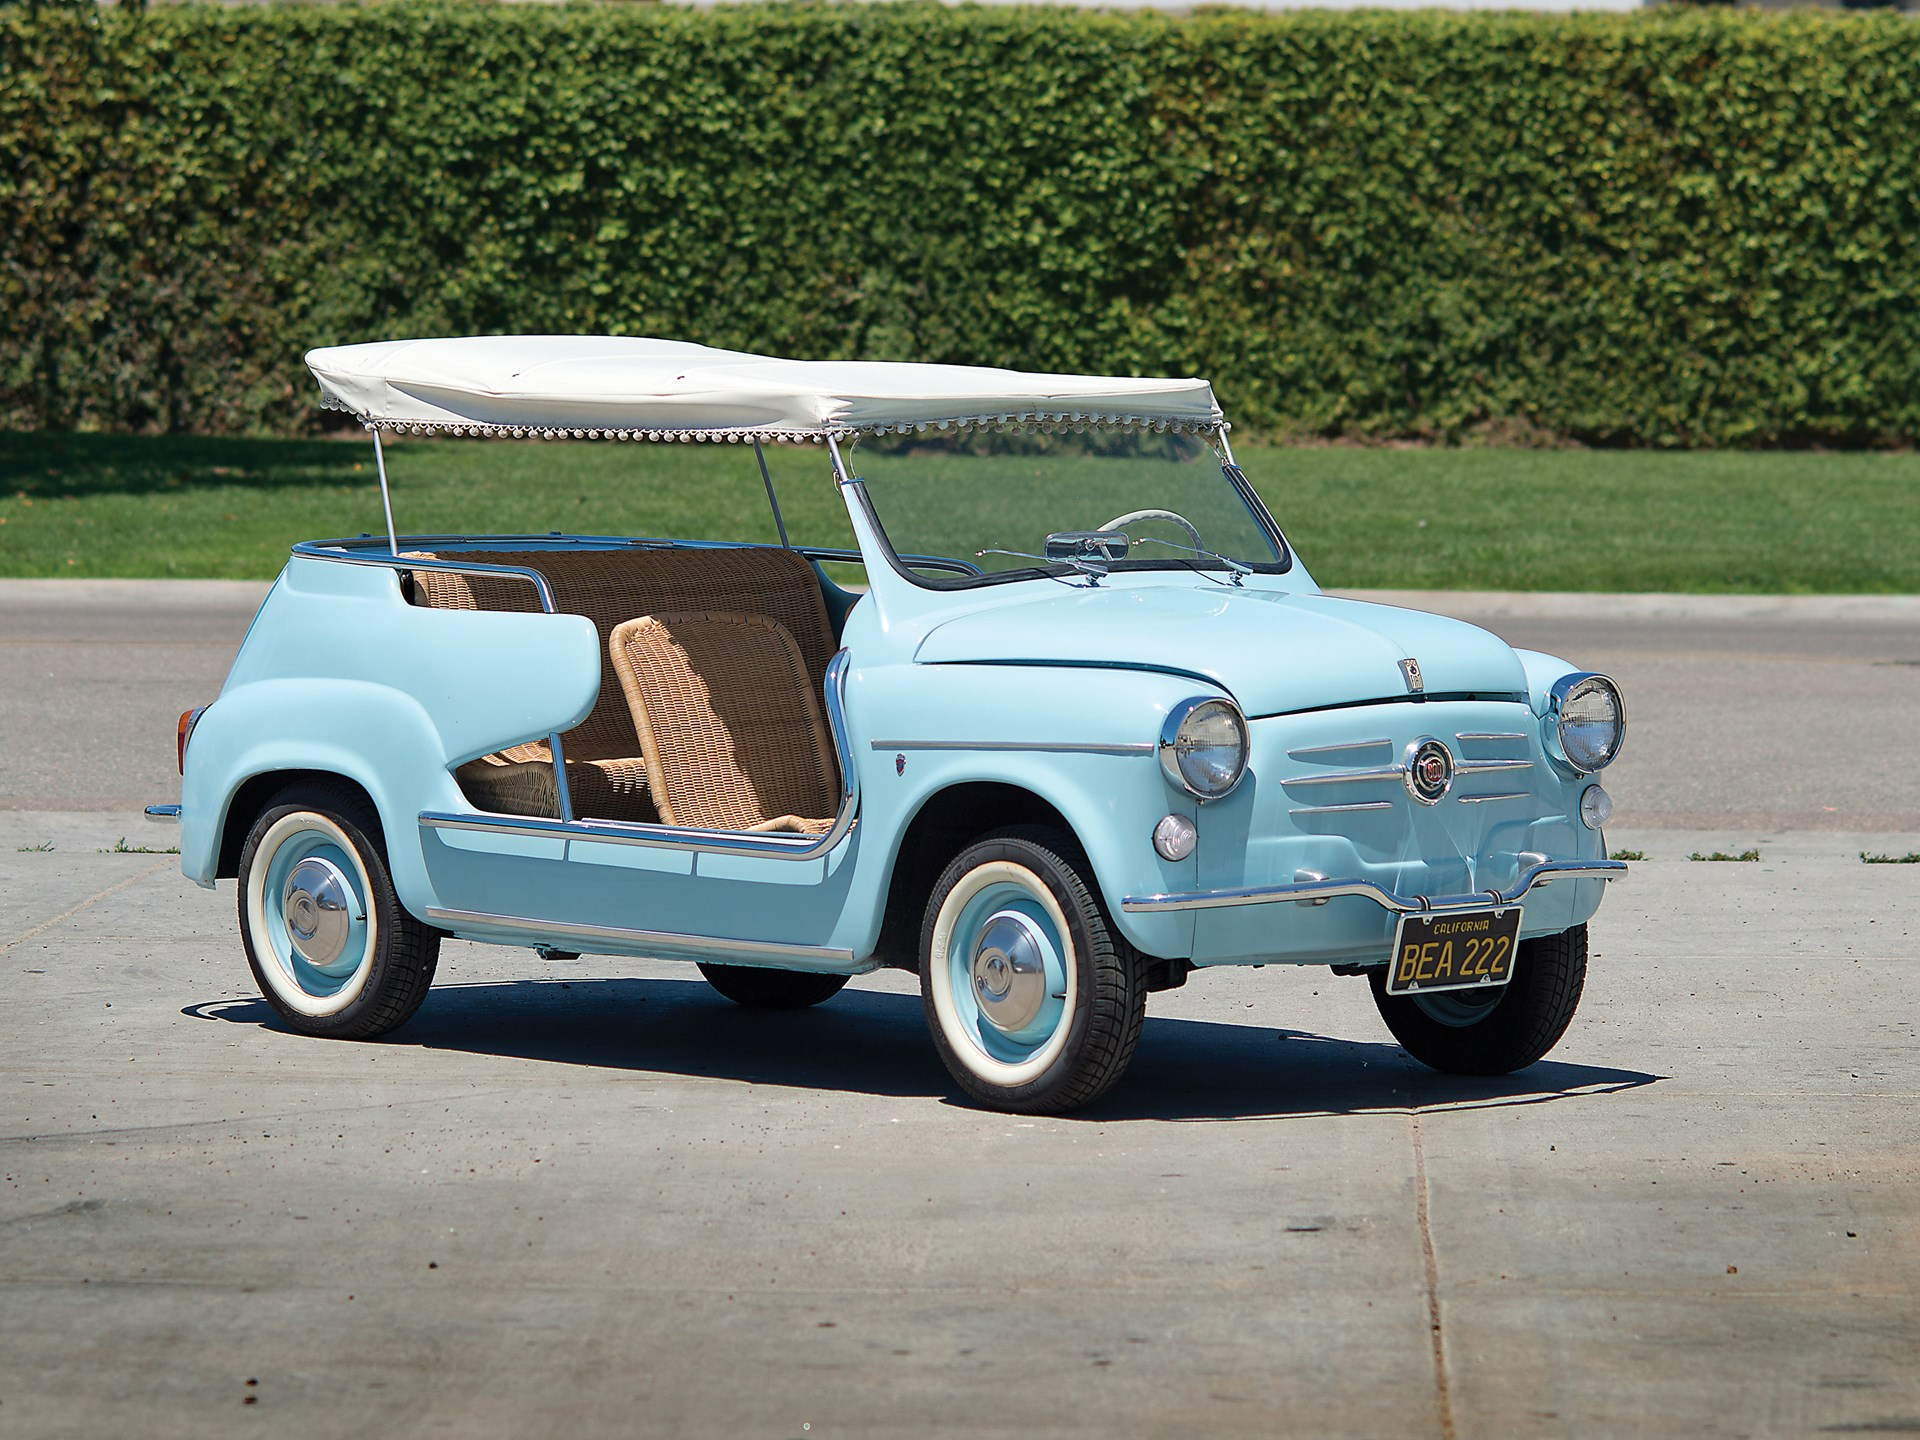 img siata collection project node for sale car classic restoration replica fiat jolly